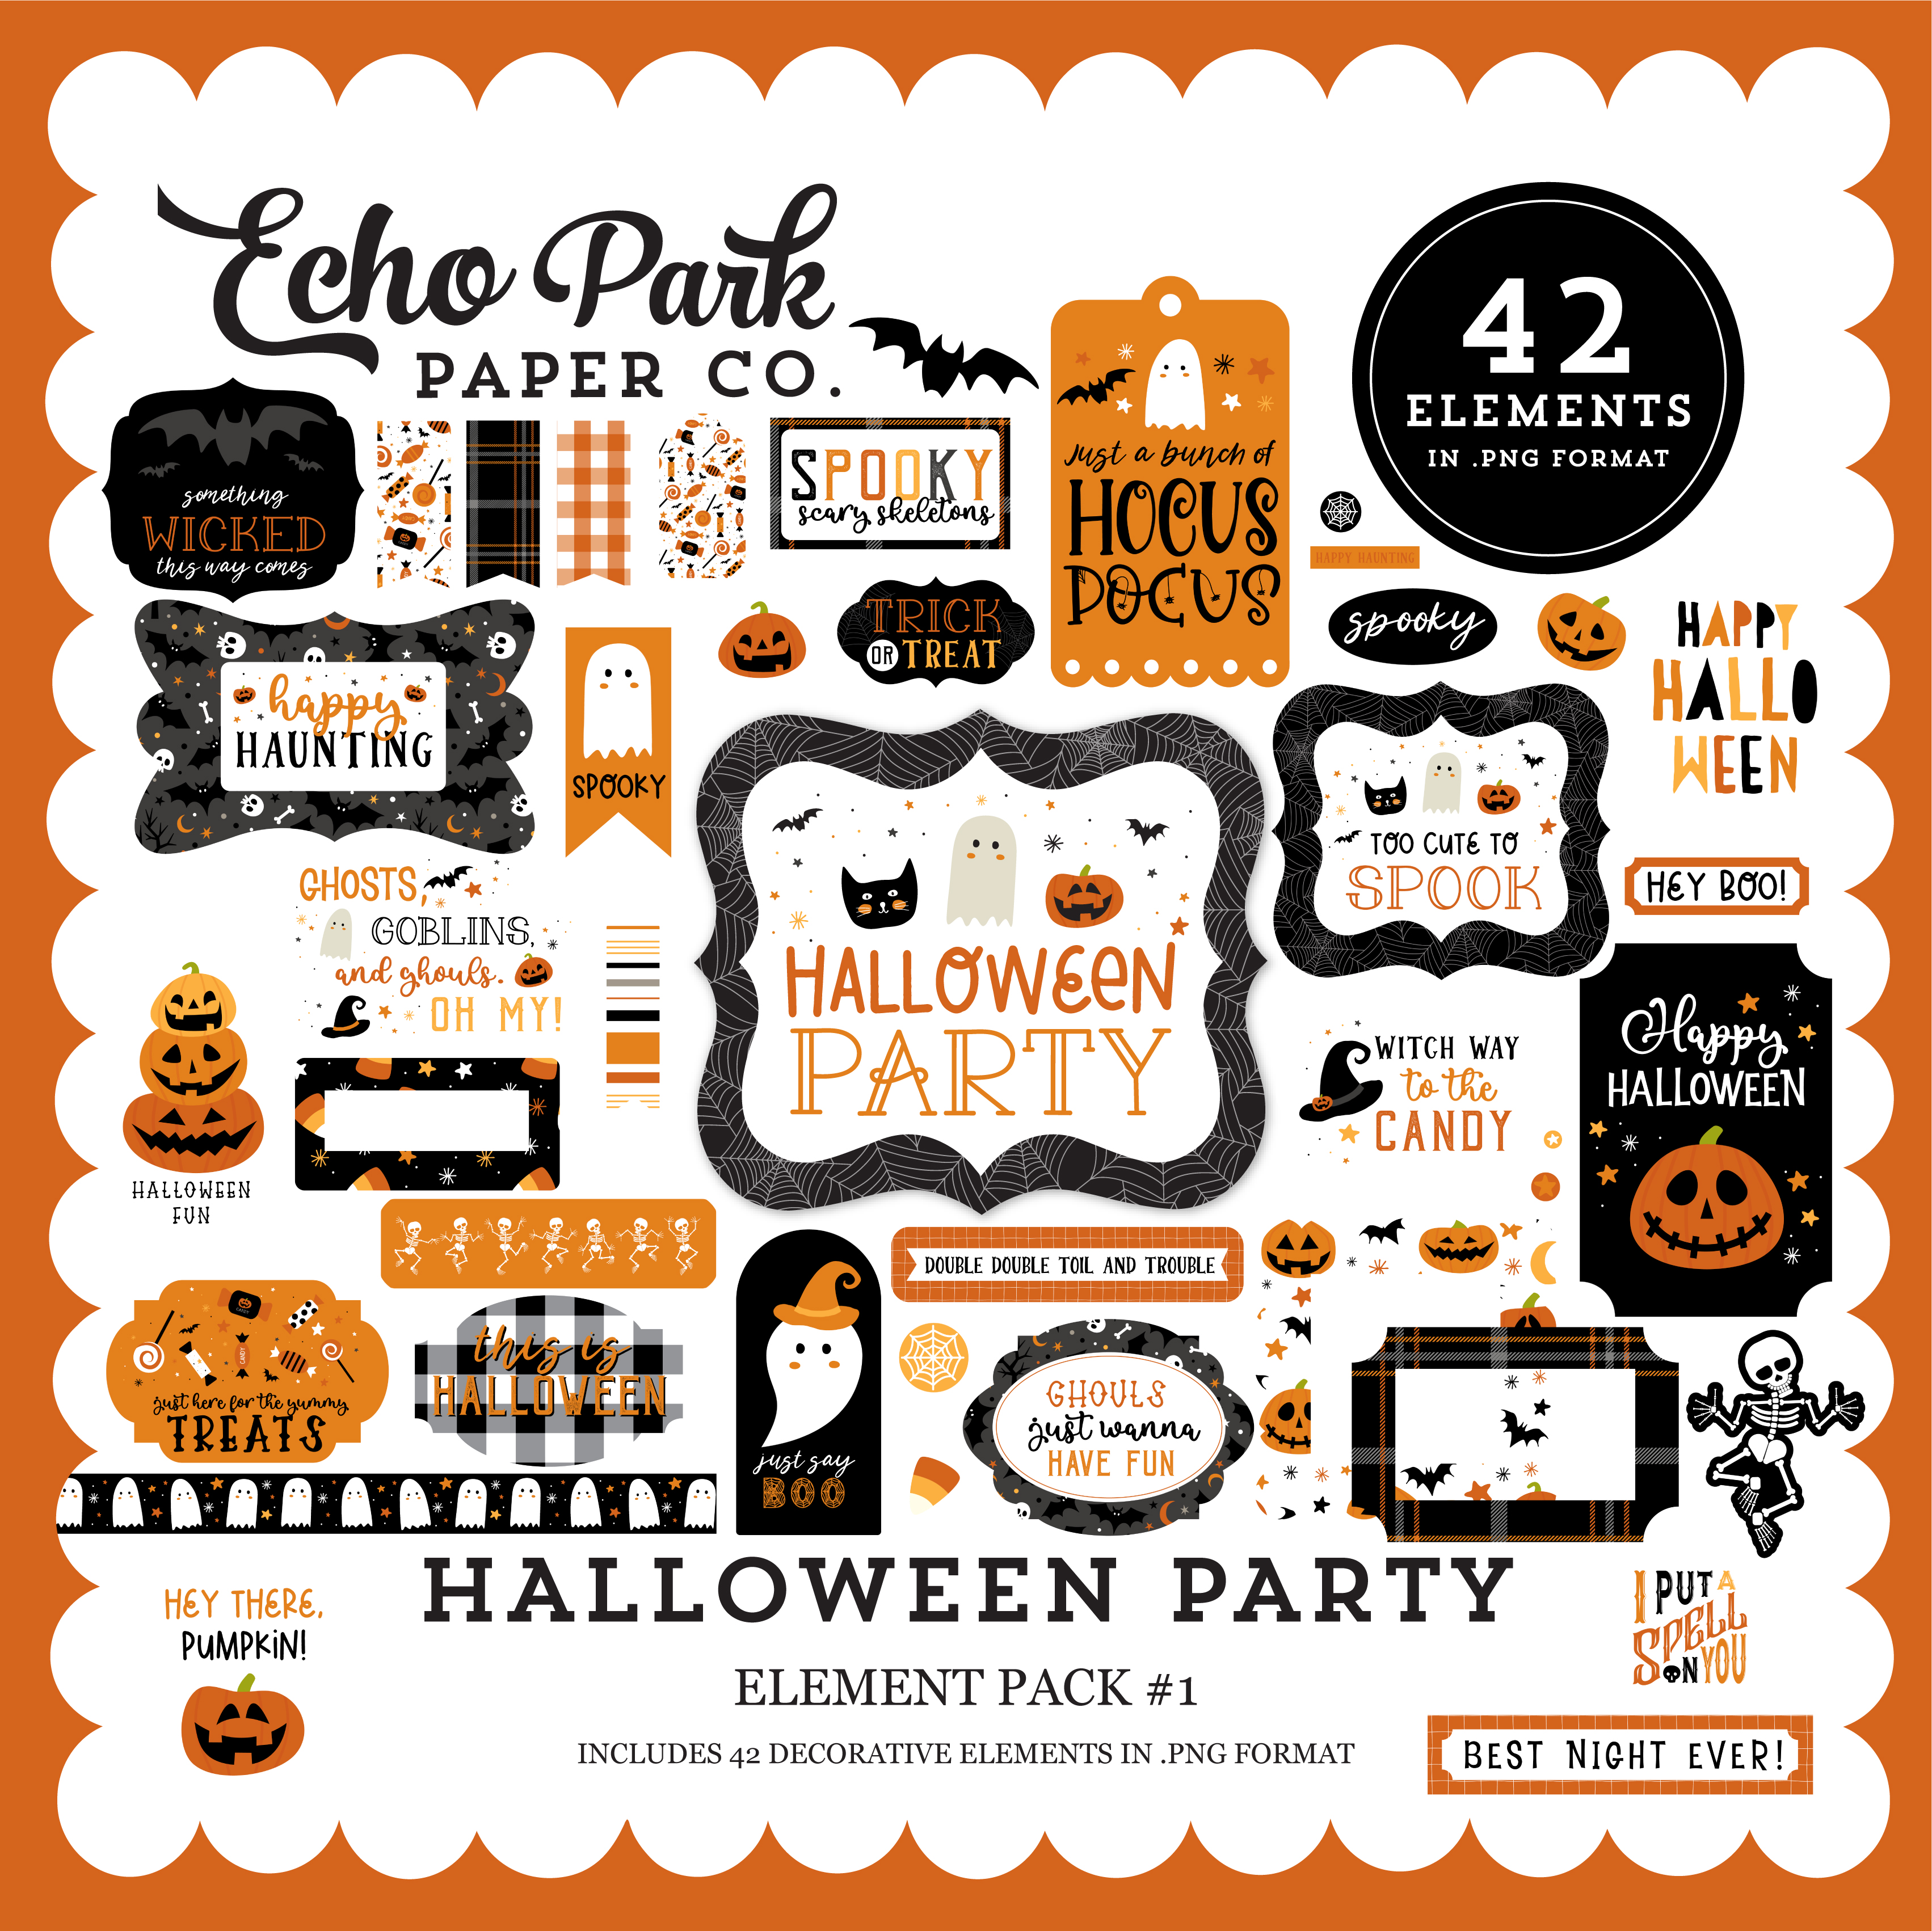 Halloween Party Element Pack #1